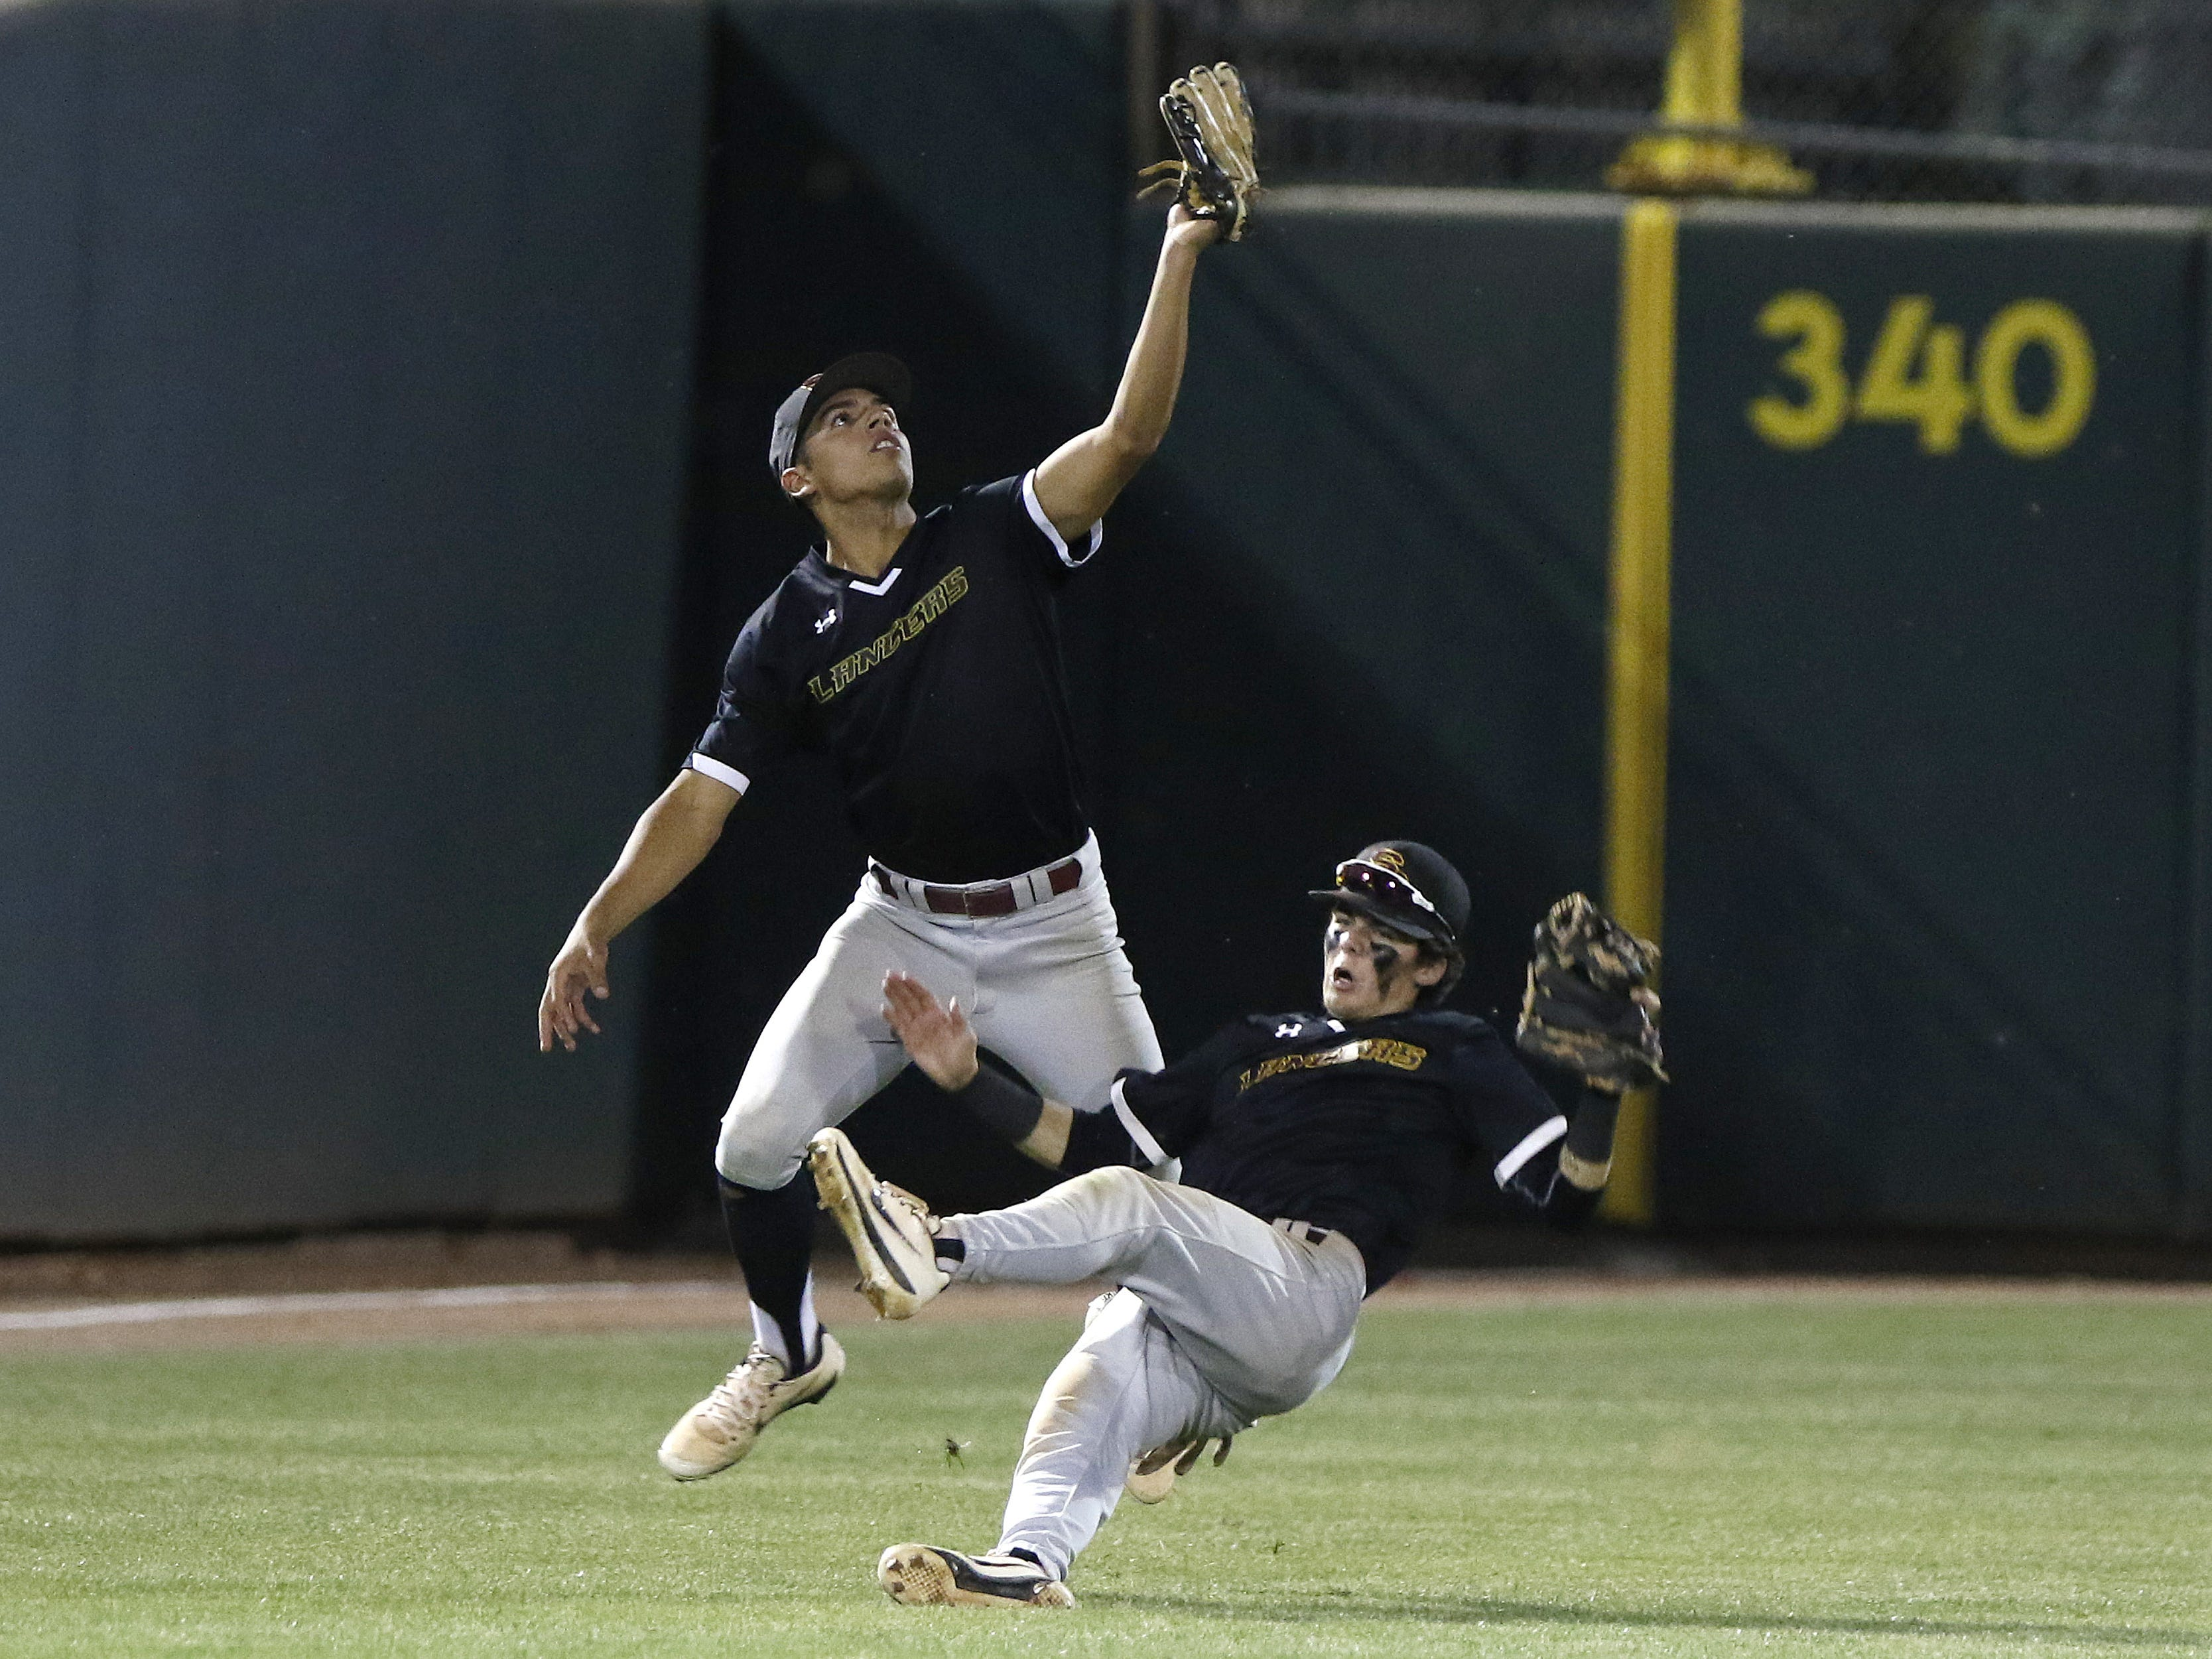 Salpointe's Ricky Santiago (left) and shortstop Romeo Ballesteros (falling) run into each other going after a fly ball against Mesquite during the 4A State Championship game in Mesa, Monday, May 13, 2019.